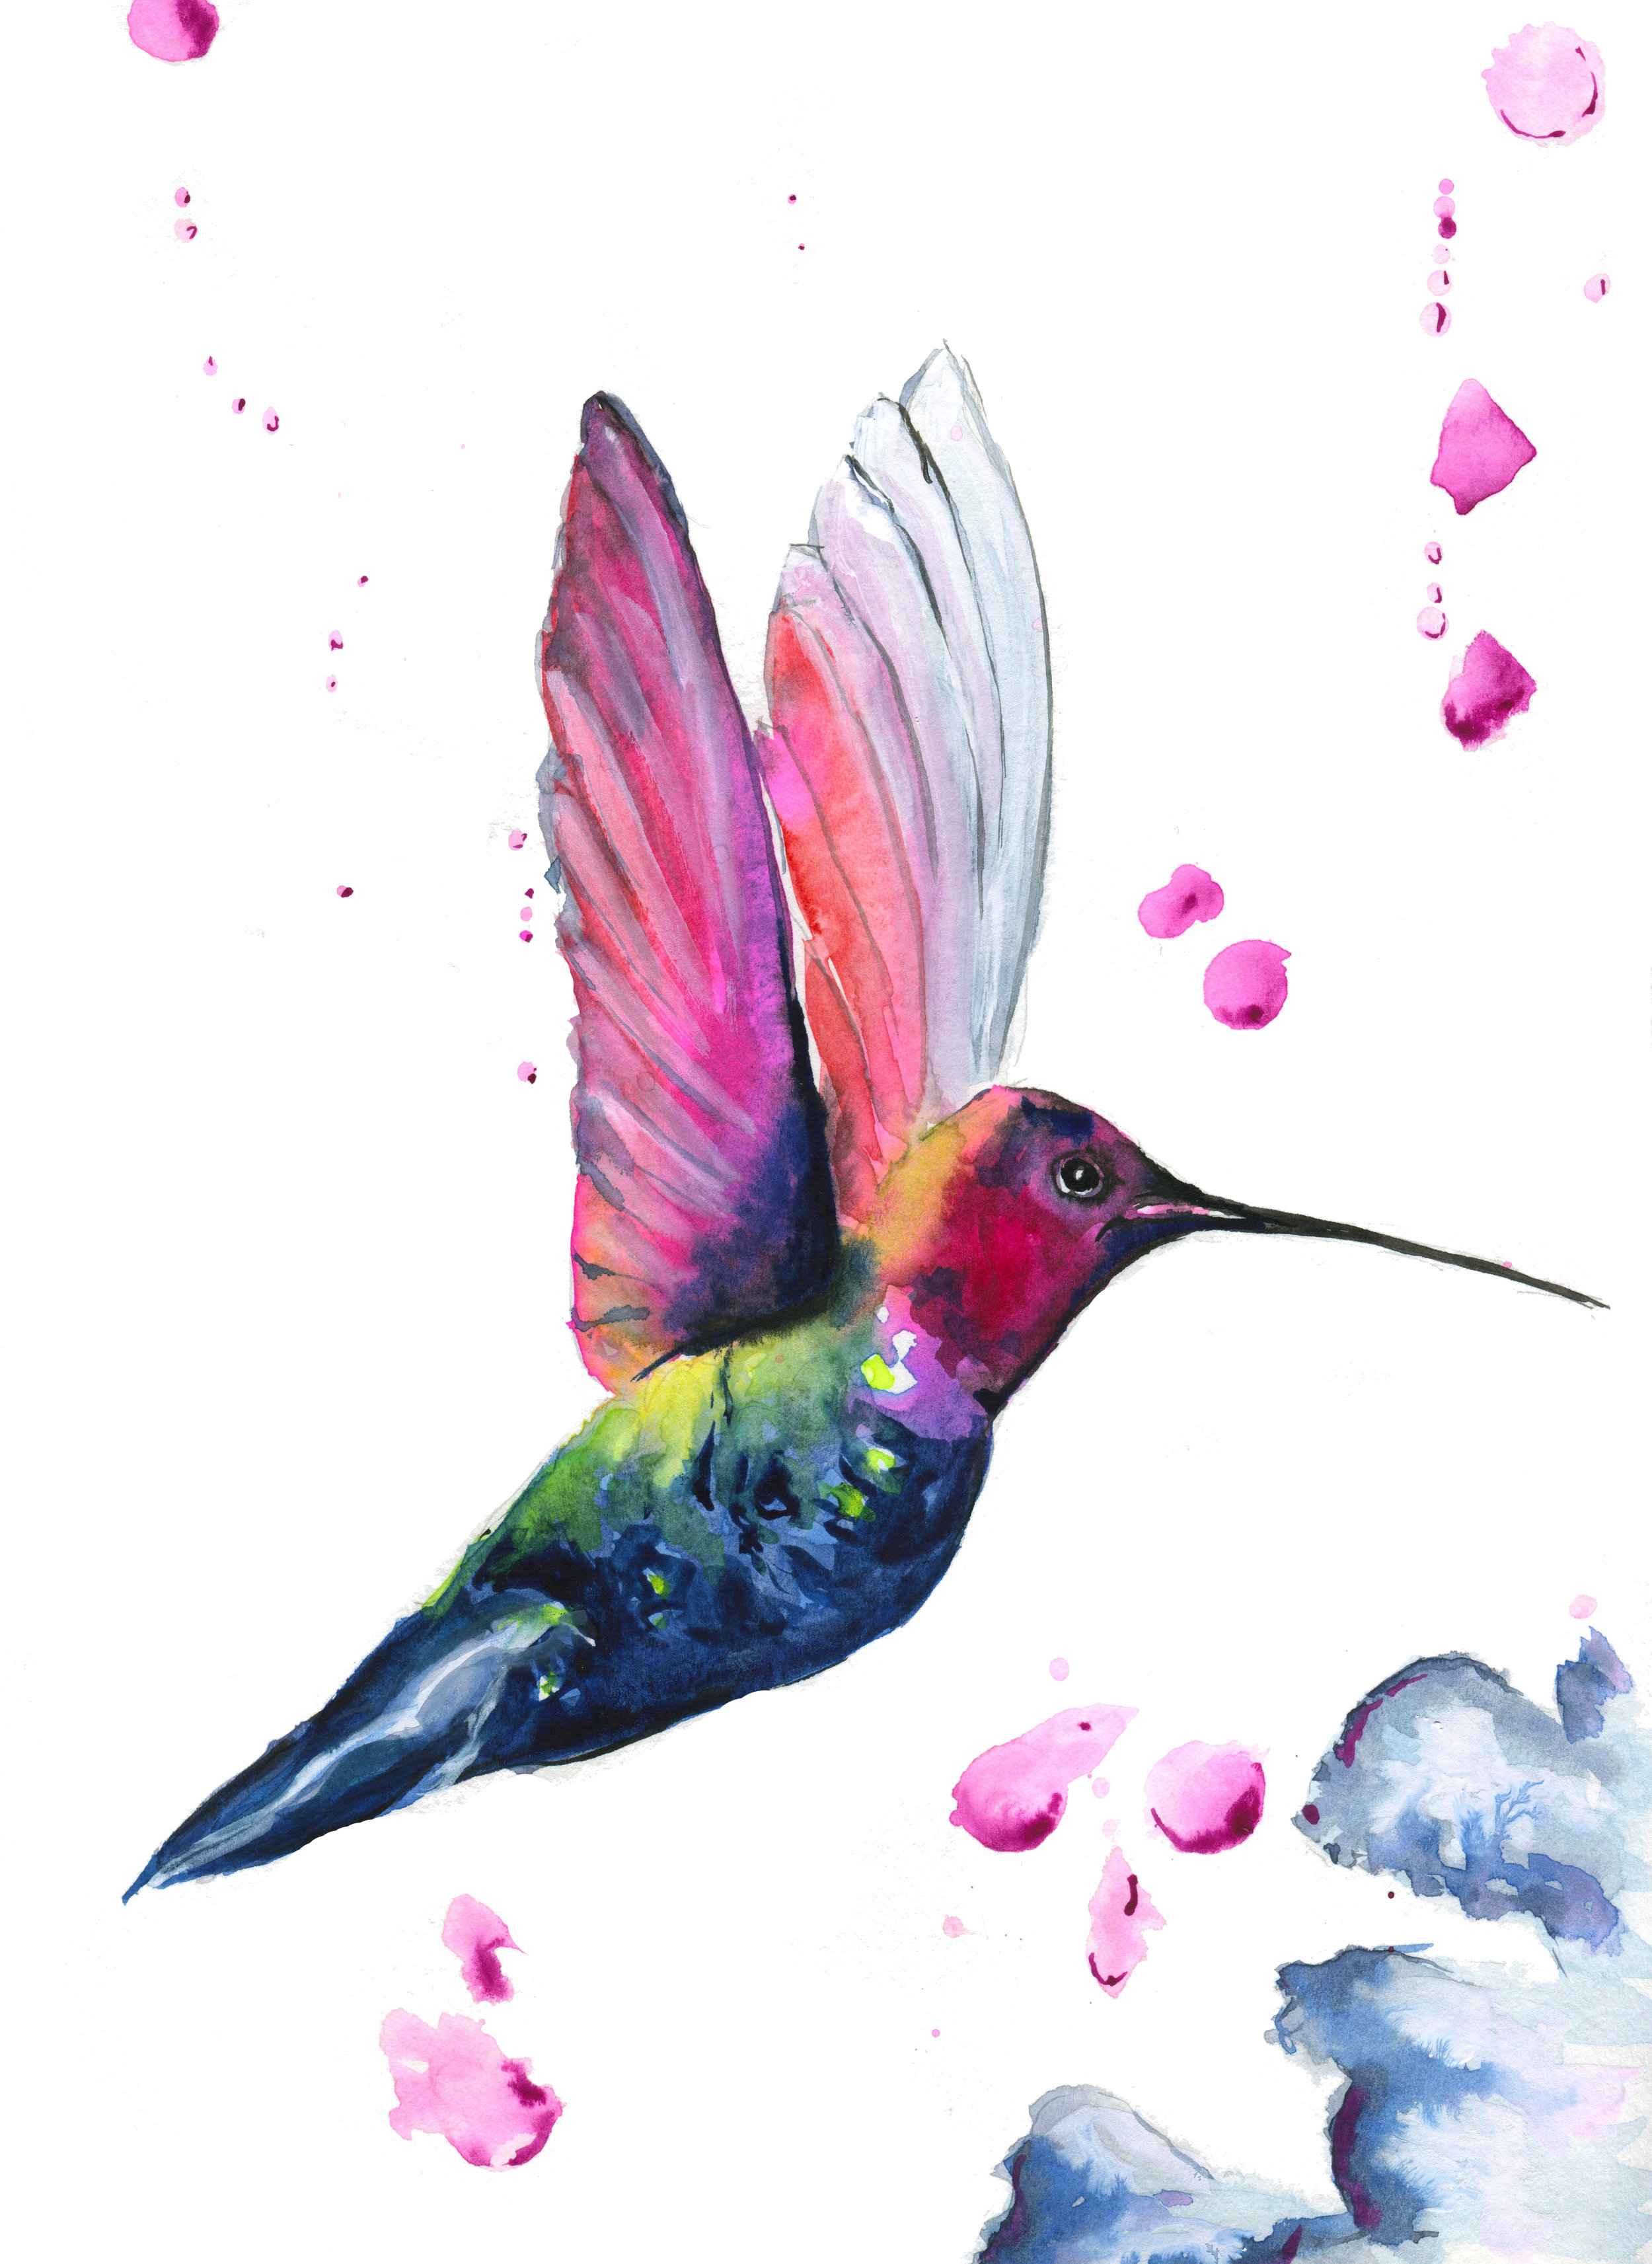 Hummingbird bedroom print - My client was in the process of having her bedroom redecorated and wanted a piece of art to match her Hummingbird wallpaper. She sent me a few samples of the wallpaper and I came up with three different birds. This is the winning design!